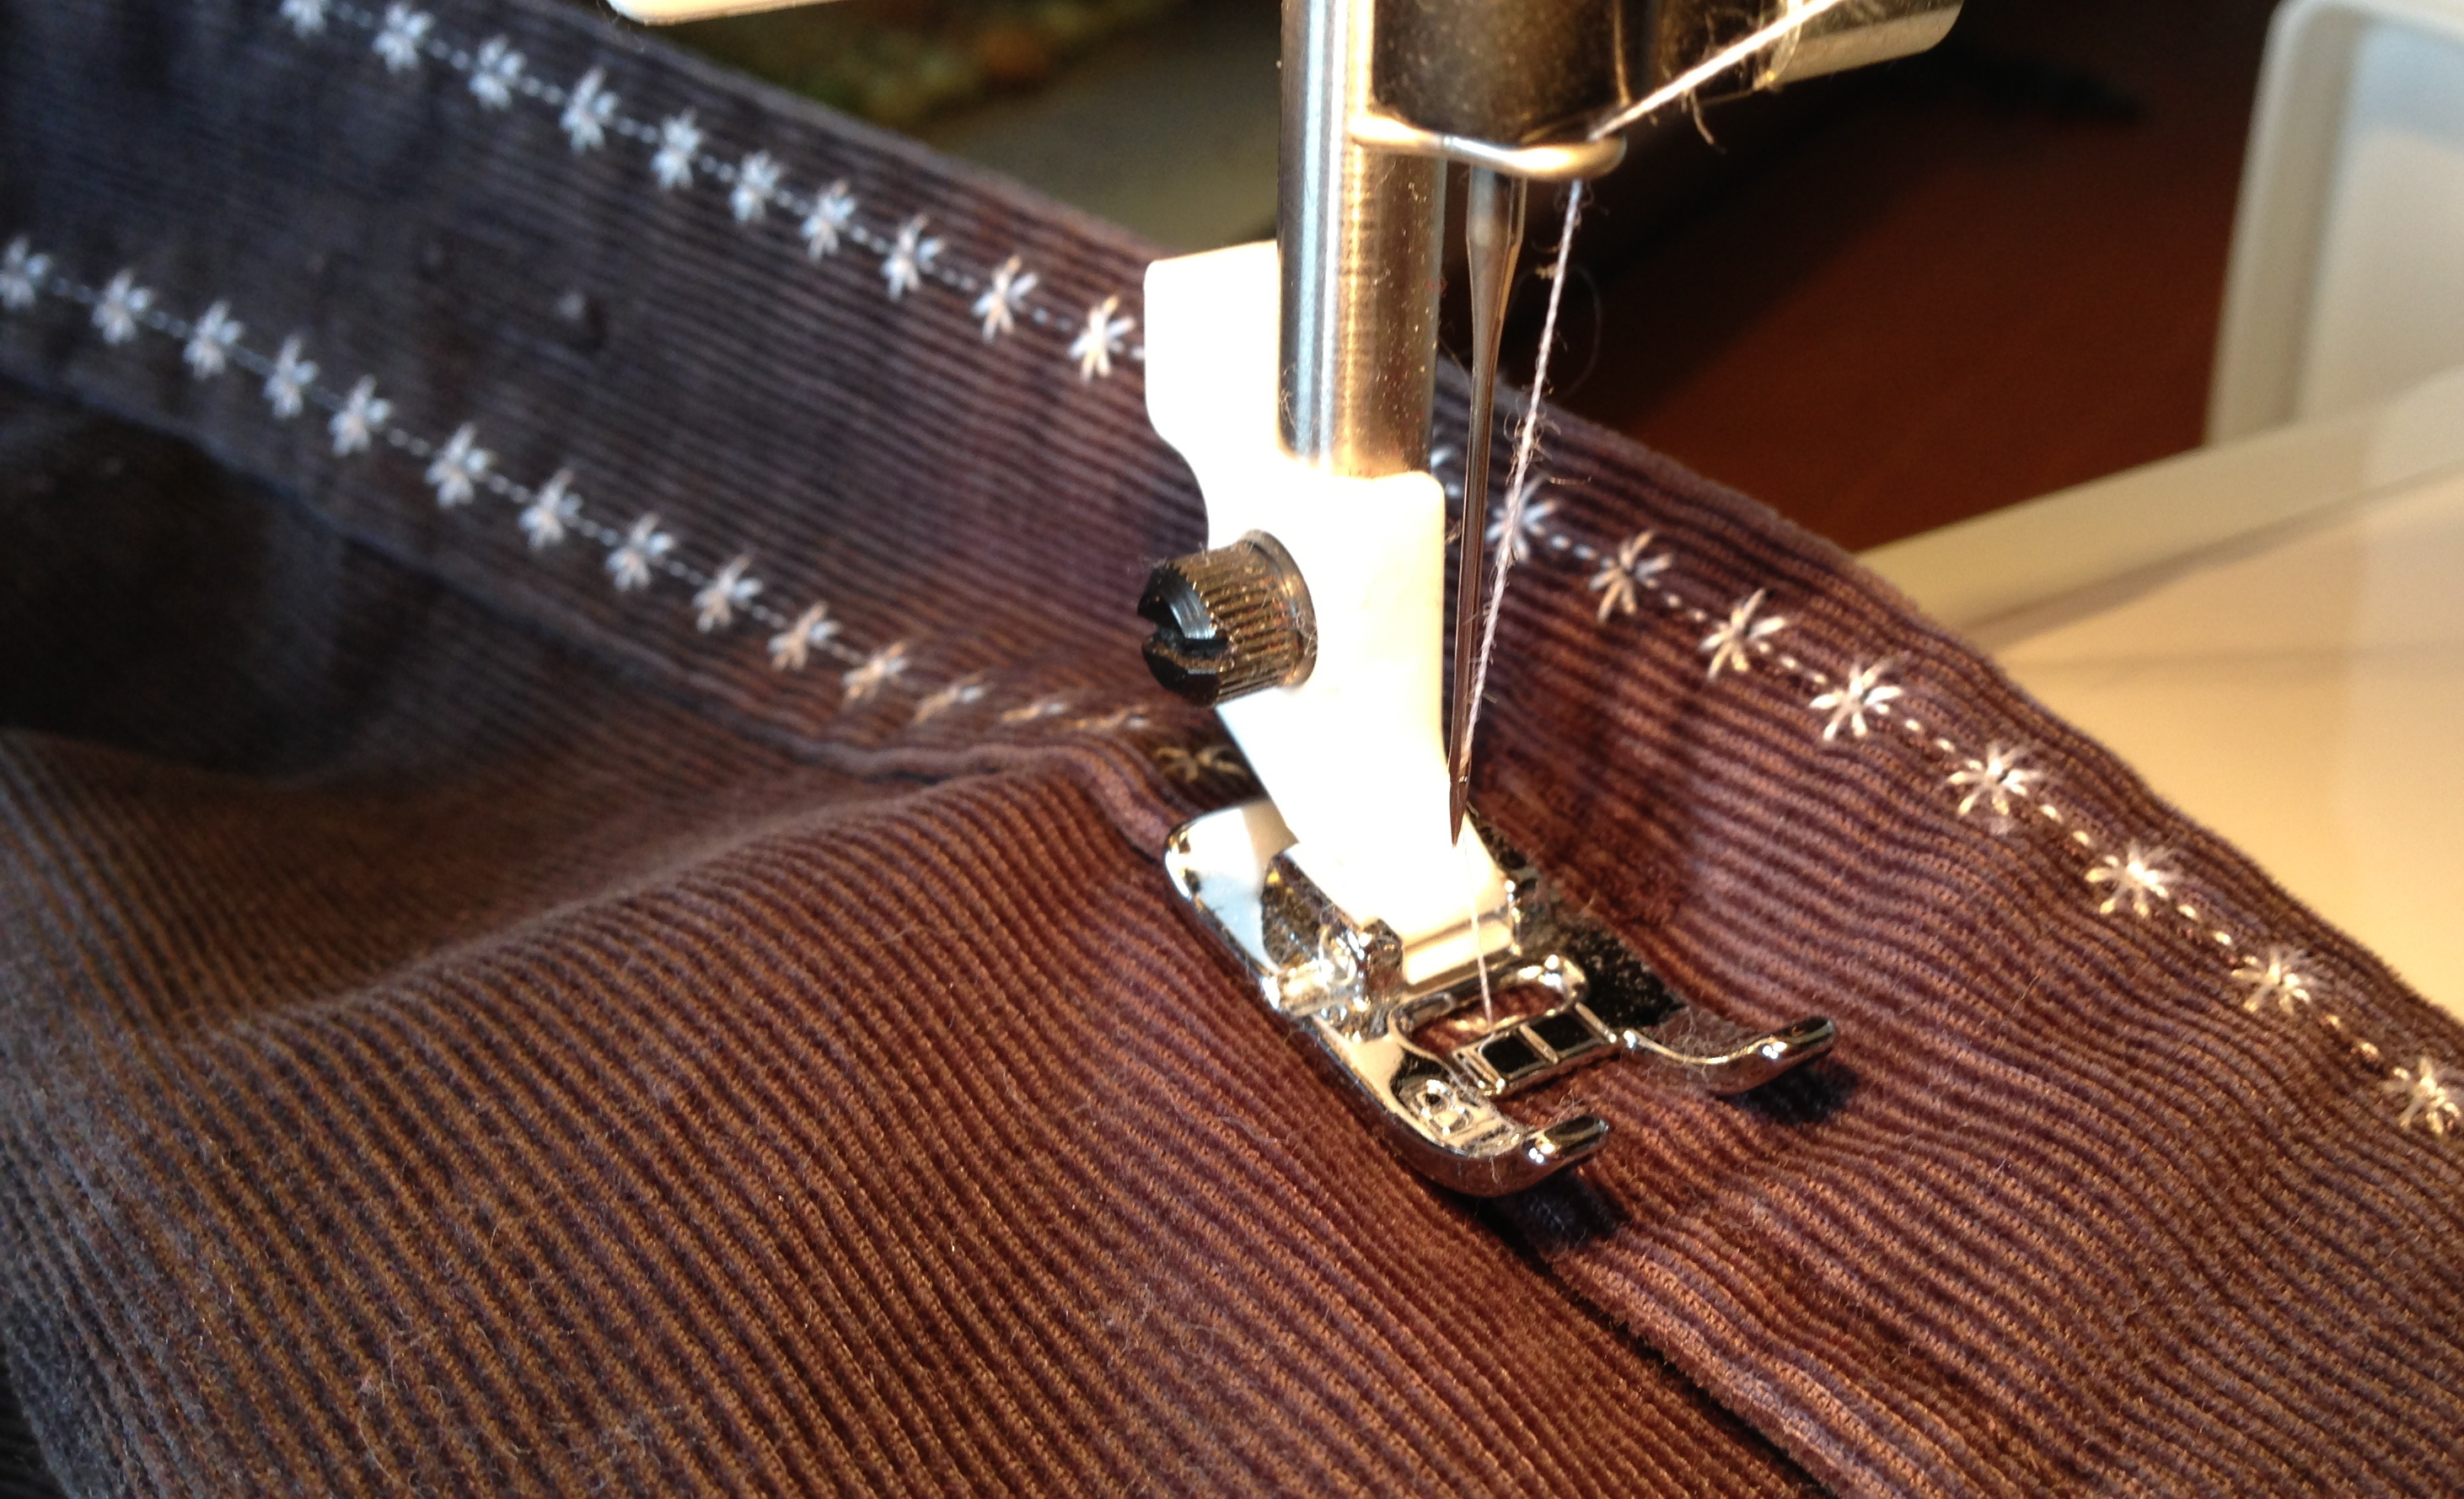 Stitching on cordoroy shirt